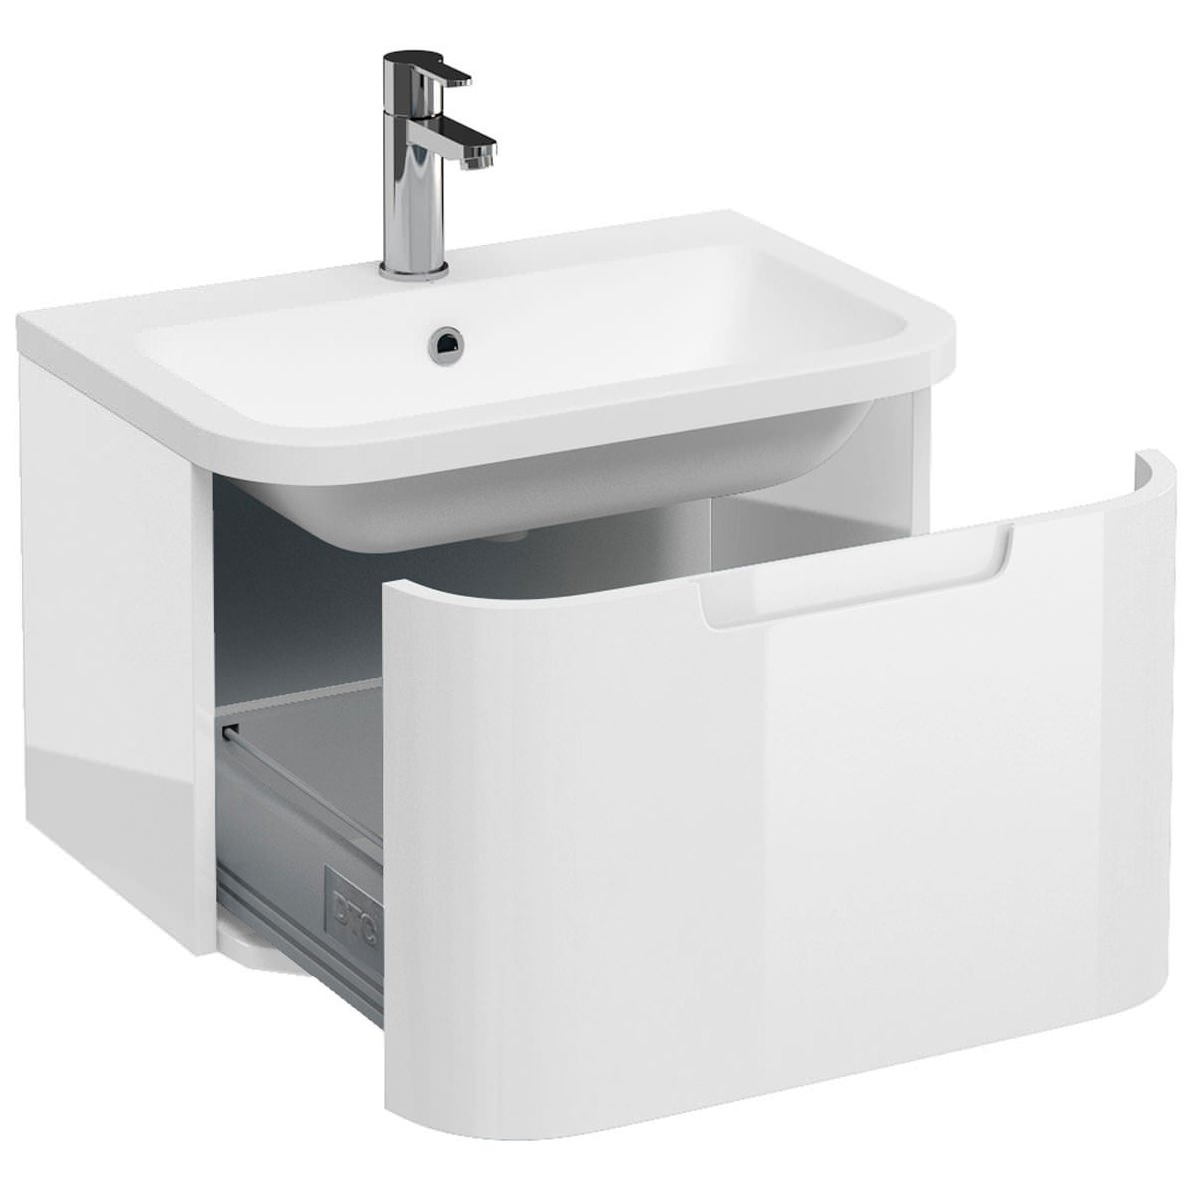 bathroom sink vanity units. Britton Aqua Cabinets Compact White 600 1 Drawer Wall Hung Basin Vanity Unit